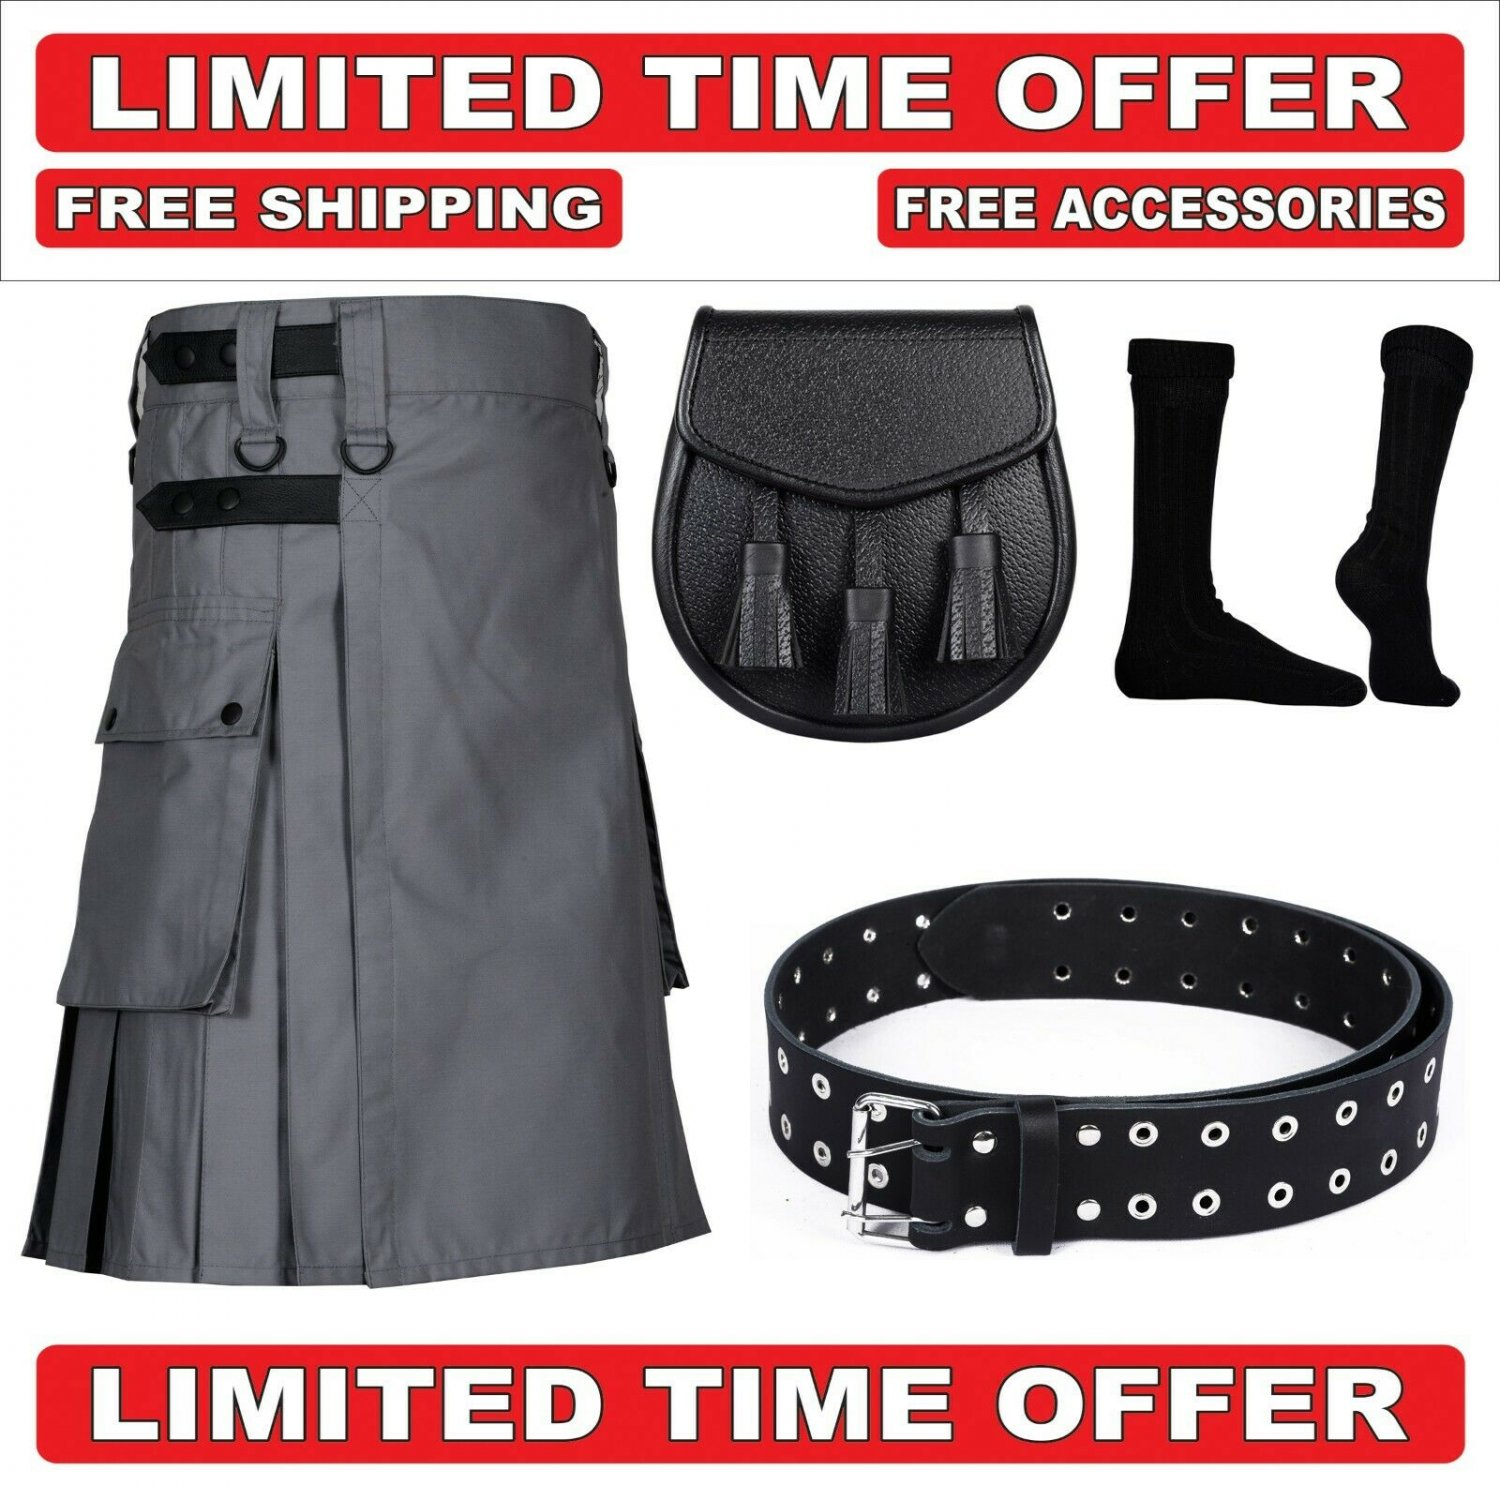 46 size grey Men's Cotton Utility Scottish Kilt With Free Accessories and Free Shipping